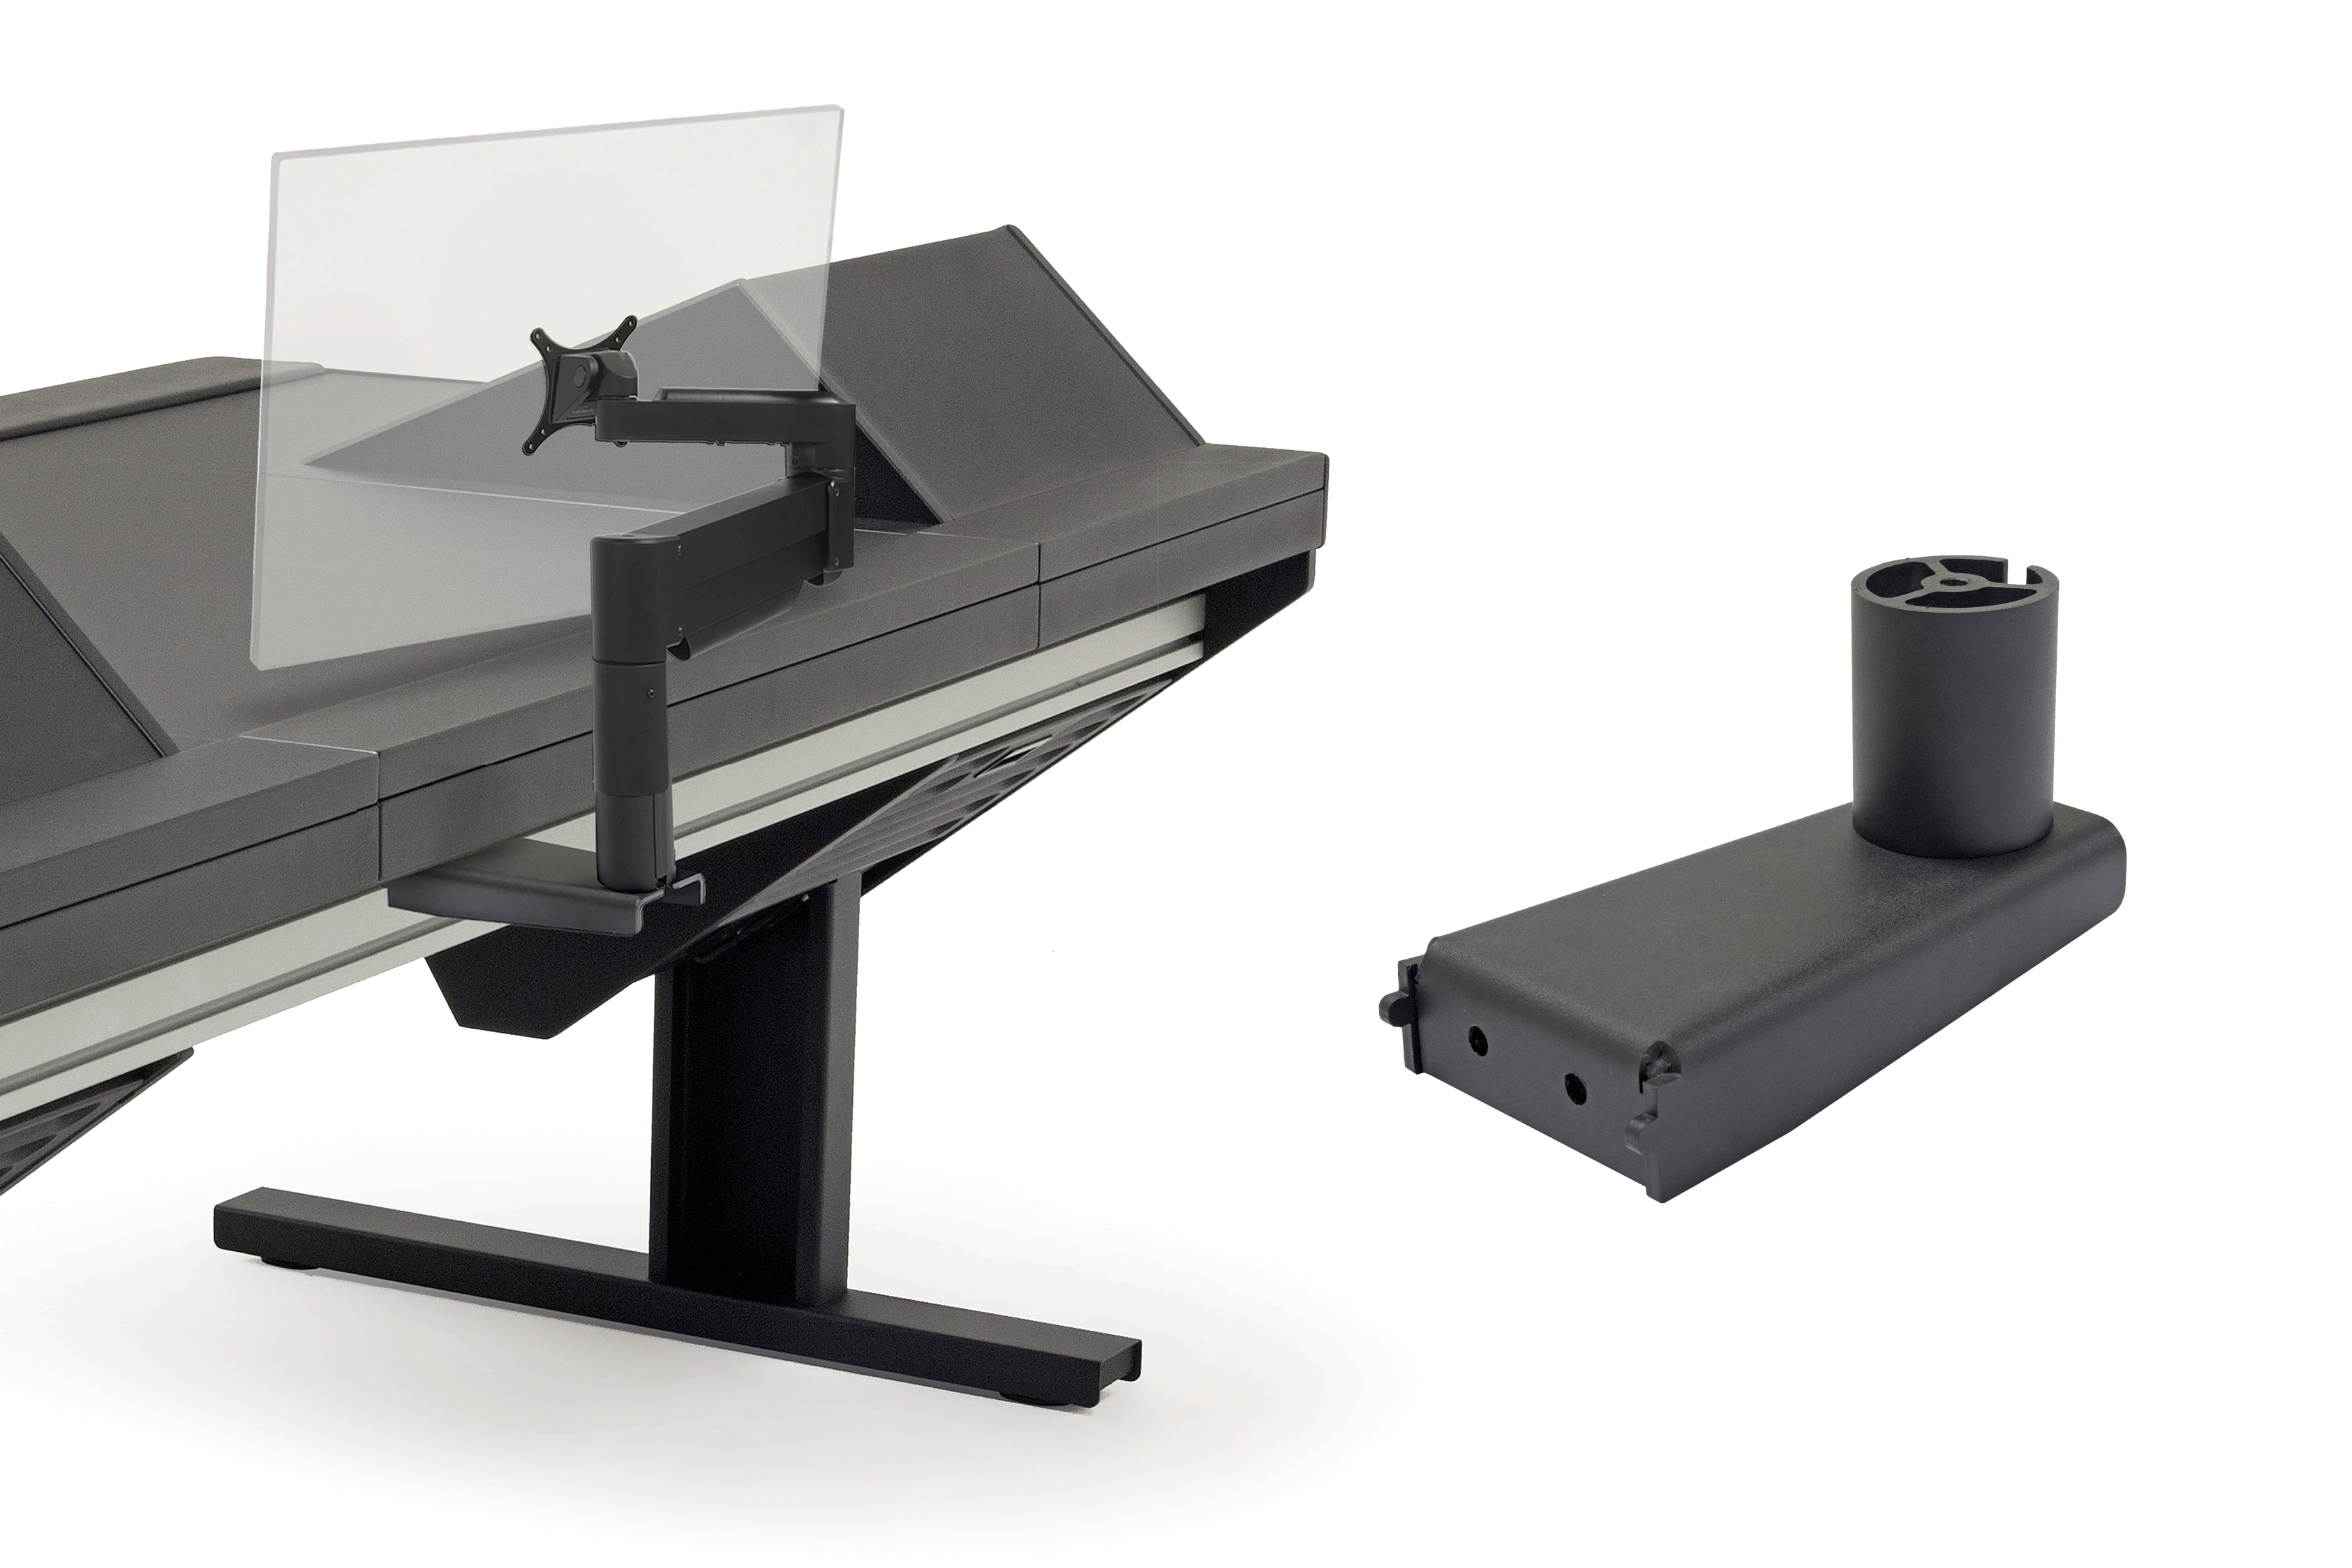 Eclipse Rail Mount Adapter for 7500 Series Monitor Arm - 3""